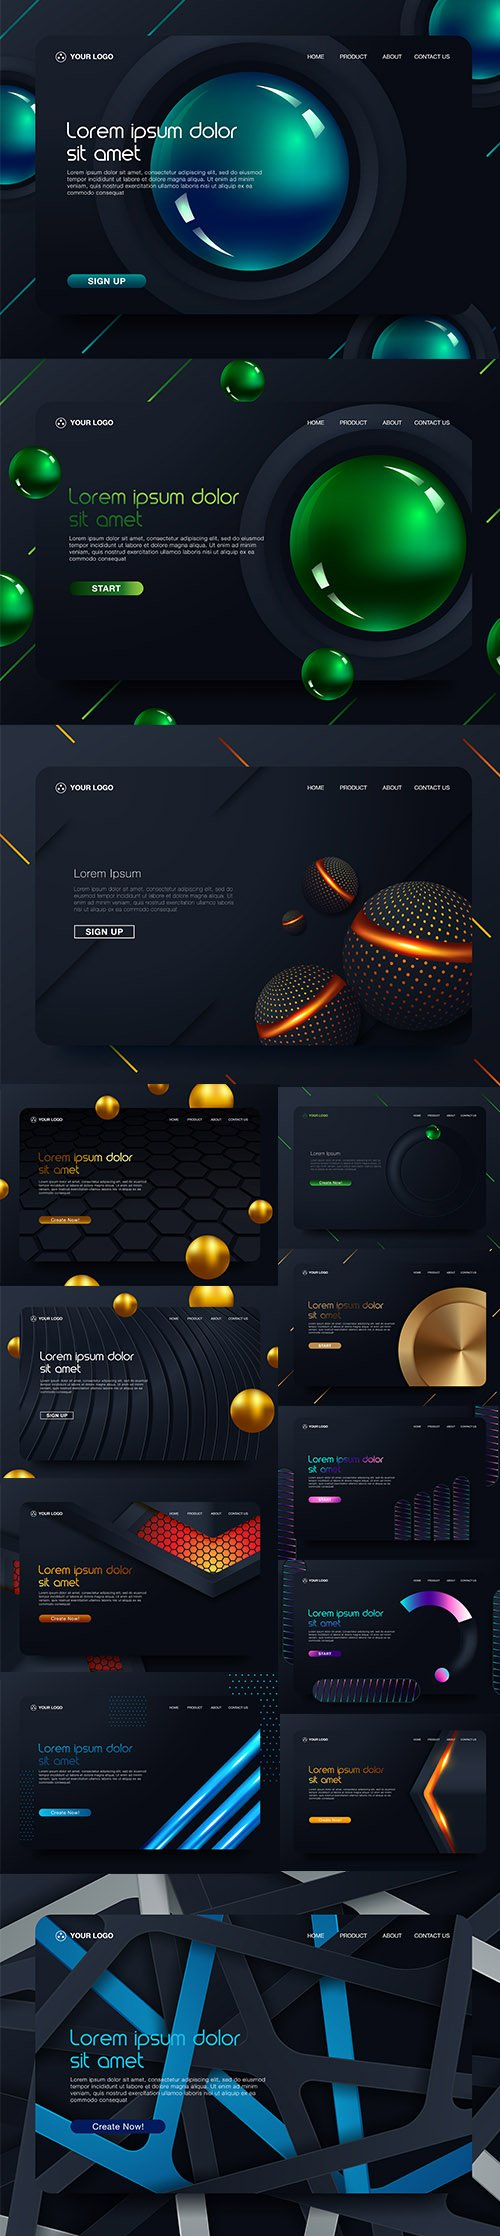 Landing Page Website Template Design Set